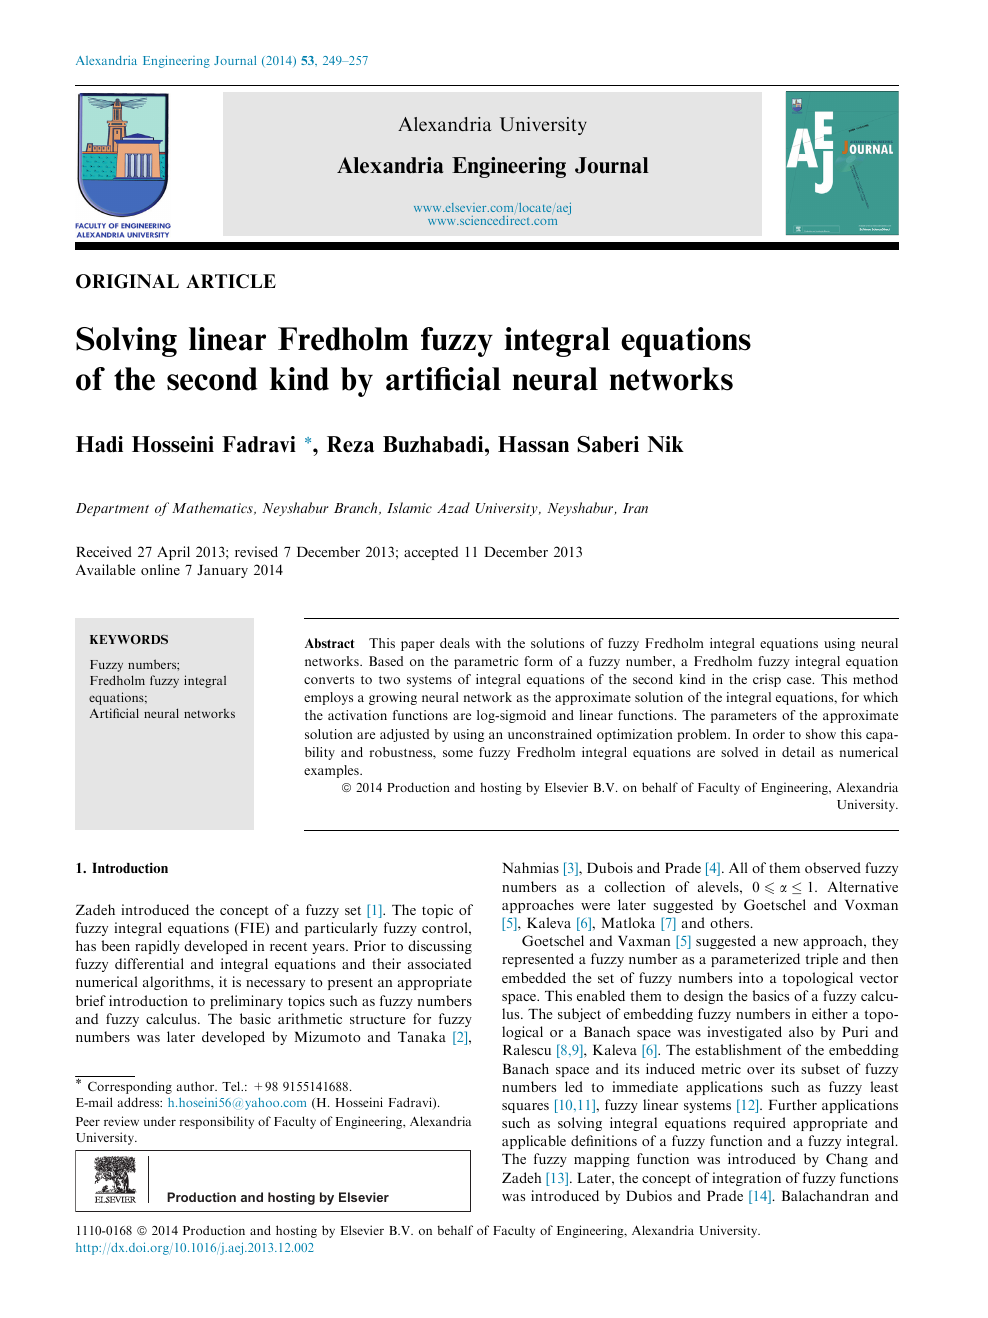 Solving linear Fredholm fuzzy integral equations of the